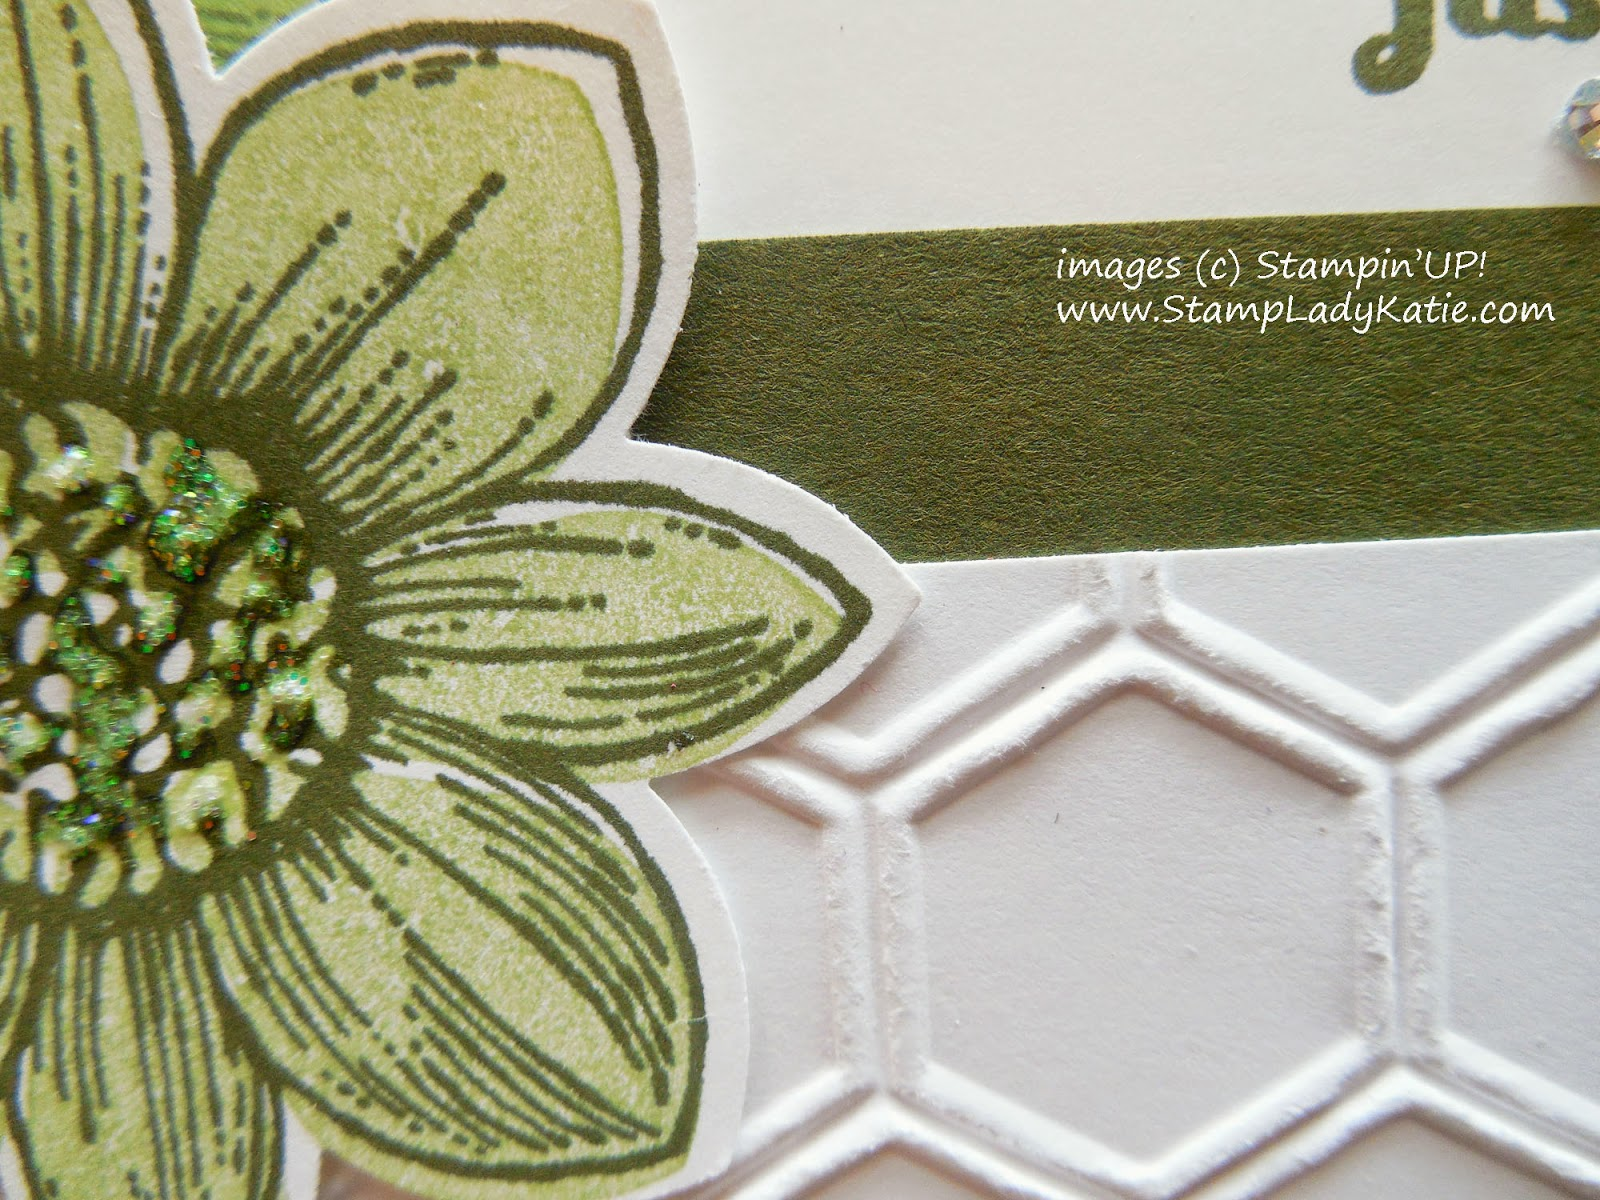 Card made with Stampin'UP!'s Petal Potpourri Stamp Set and Dazzling Details glitter glue in the center of the flower